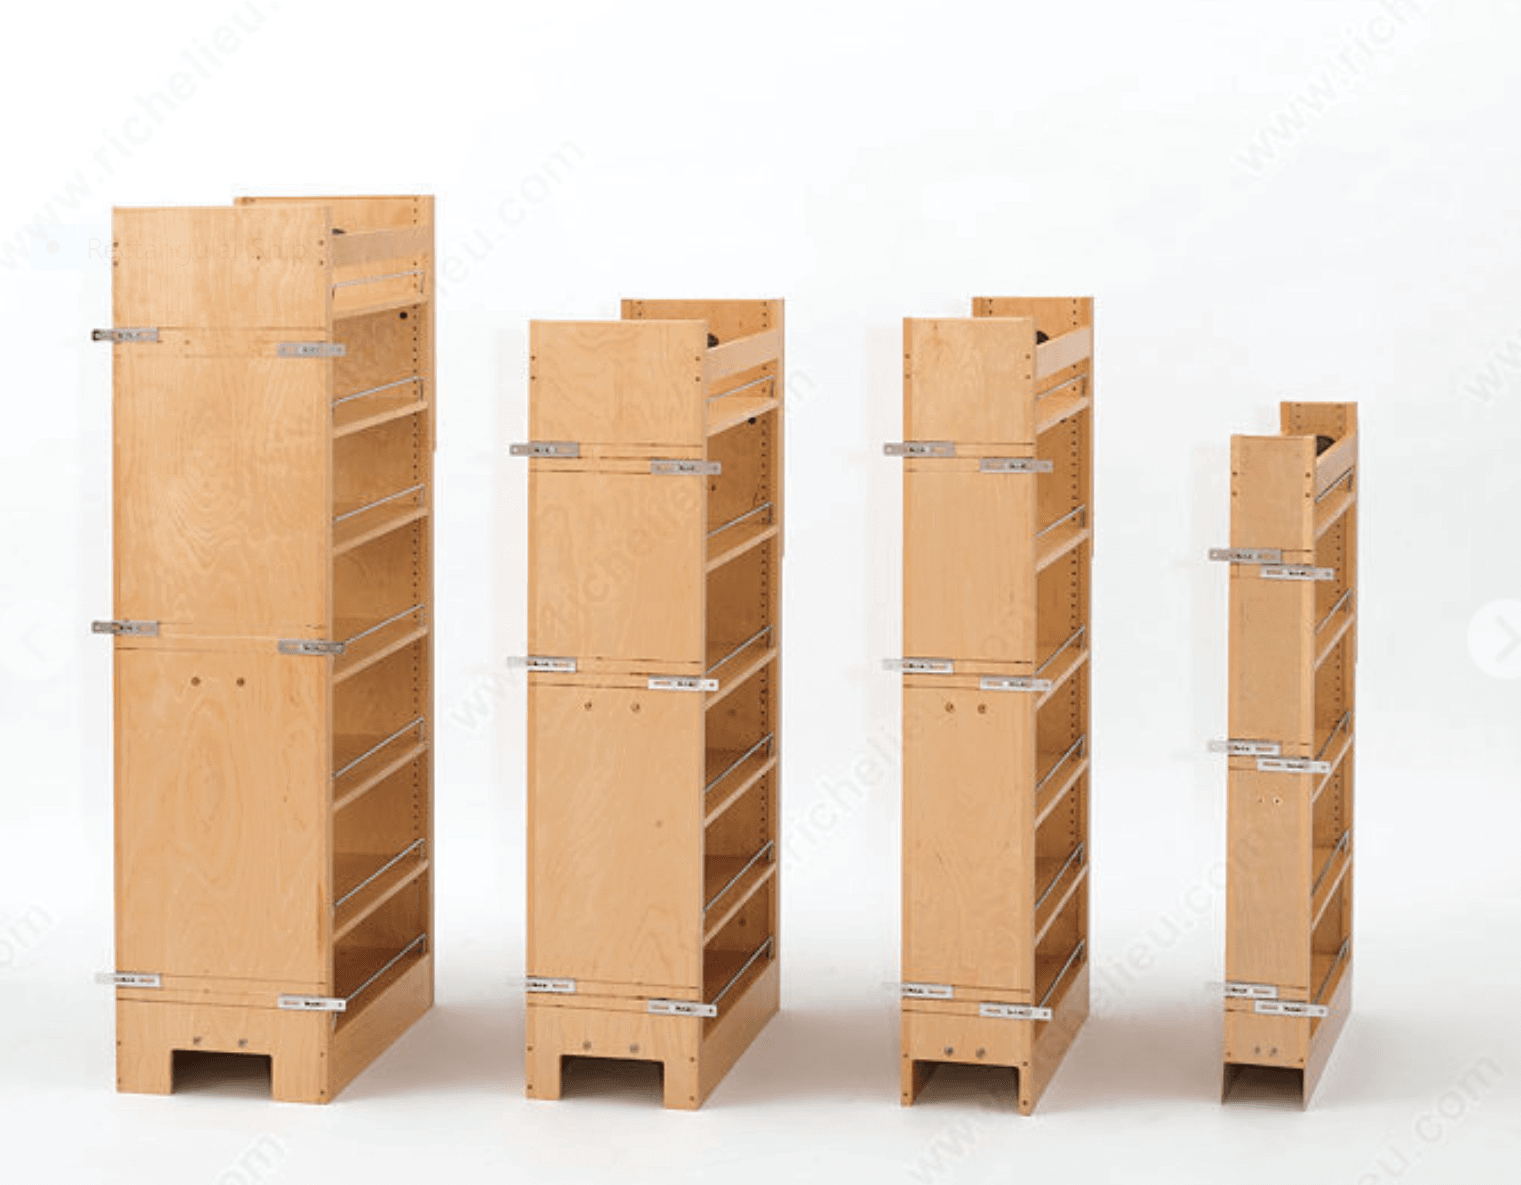 Wood pantry inserts in various widths and heights.